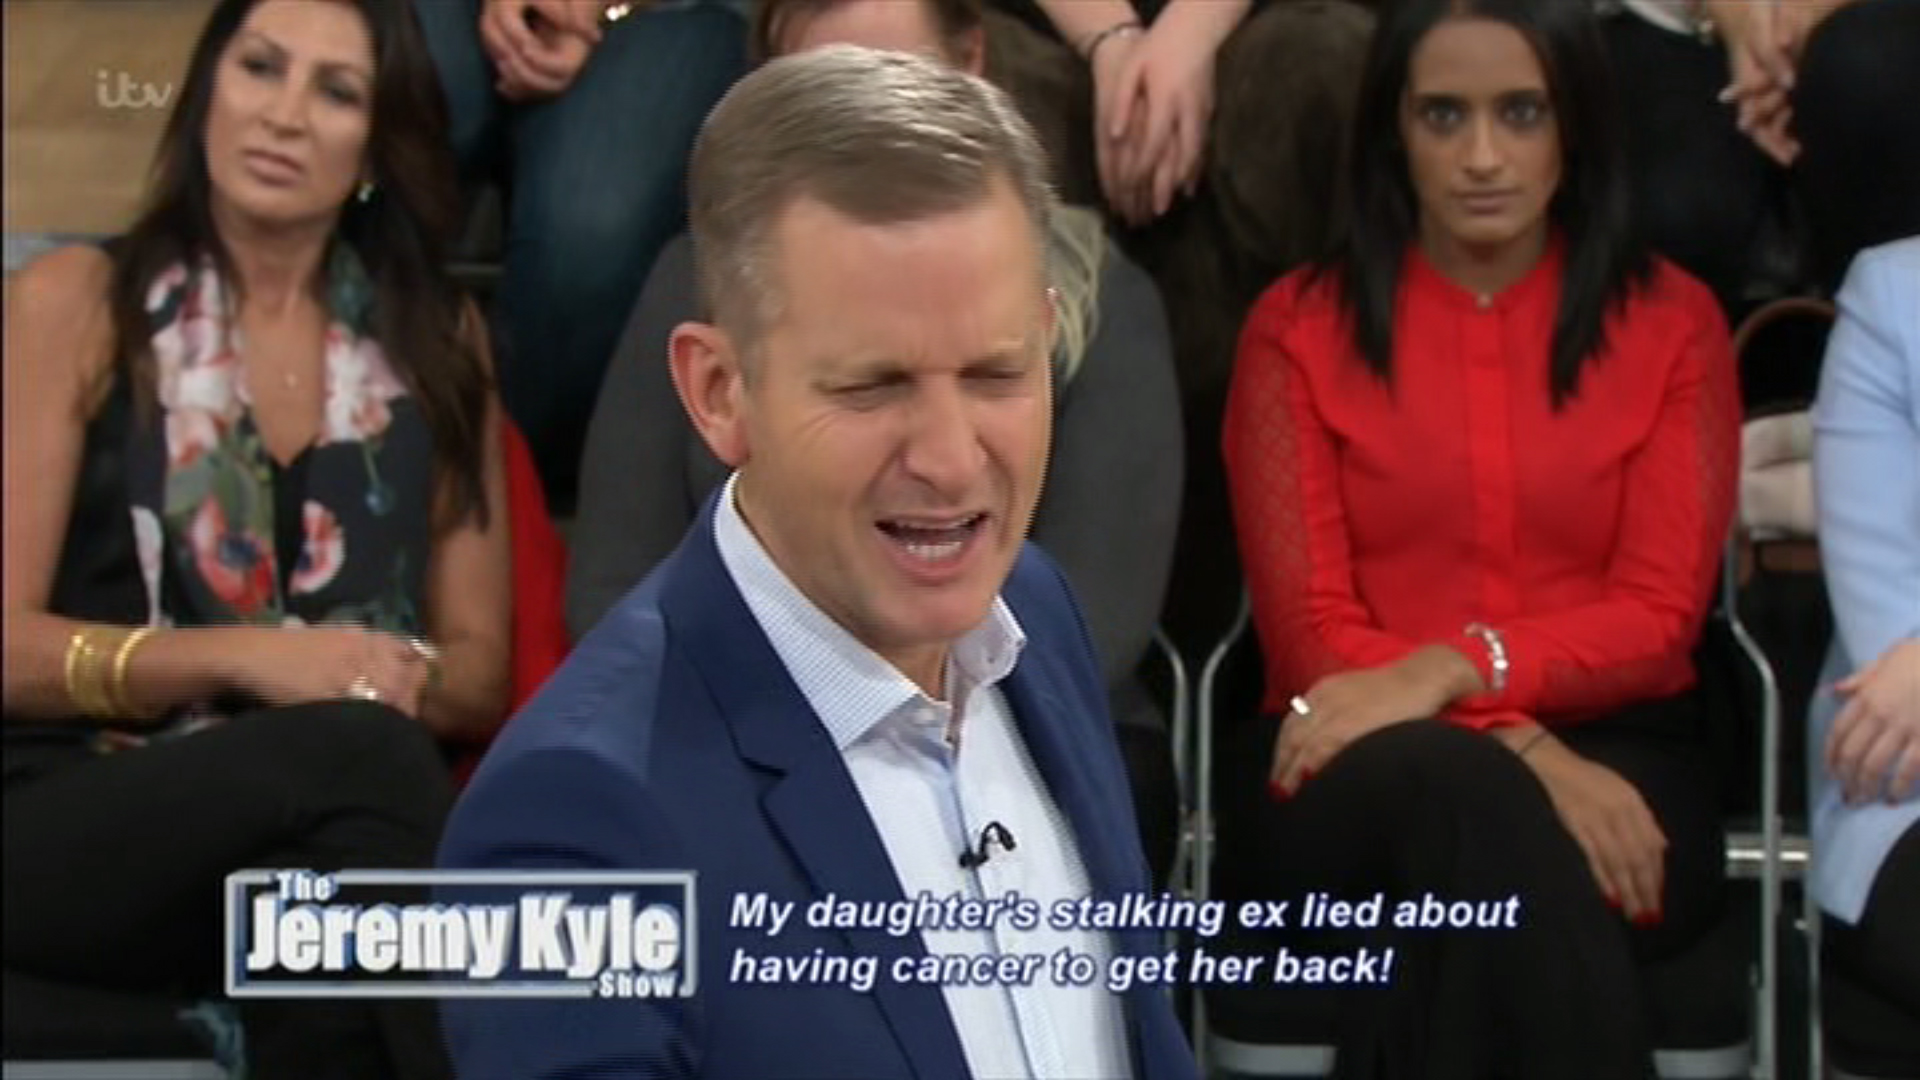 Jeremy Kyle left seething after 'vile' show guest lied about brain cancer